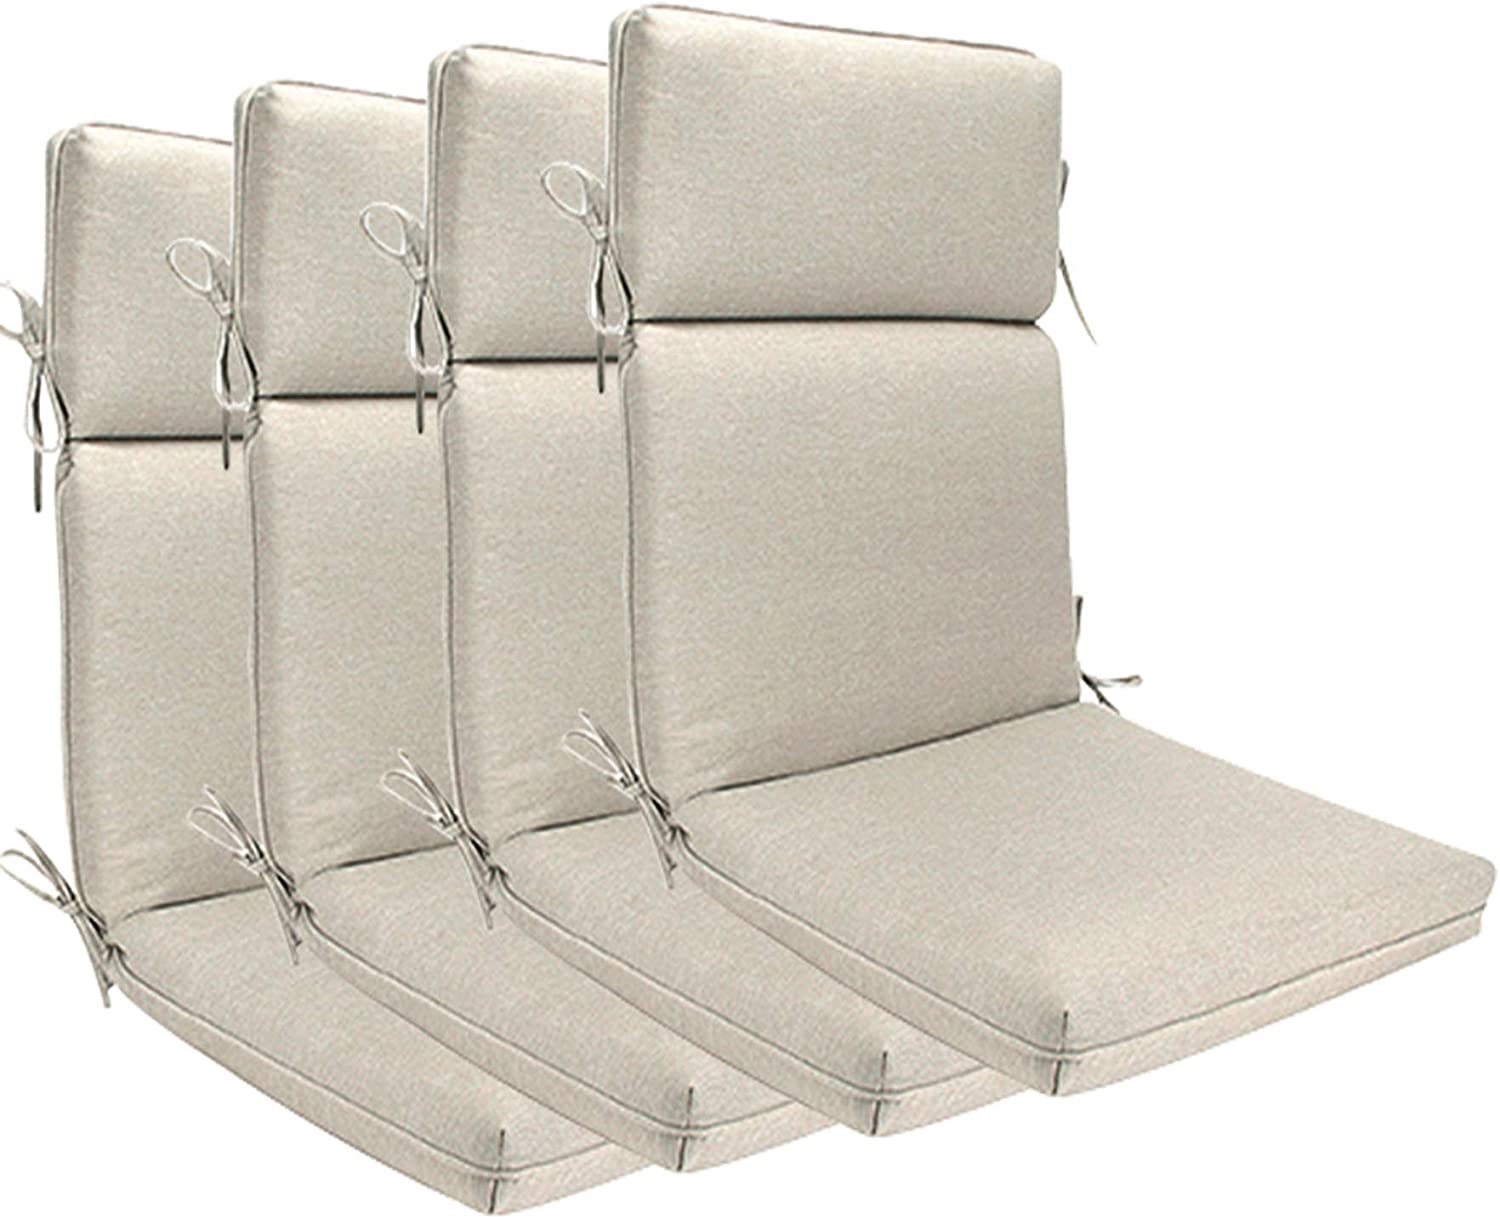 BOSSIMA Indoor Outdoor High Back Chair Cushions Replacement Patio Chair Seat Cushions (Olefin Beige)